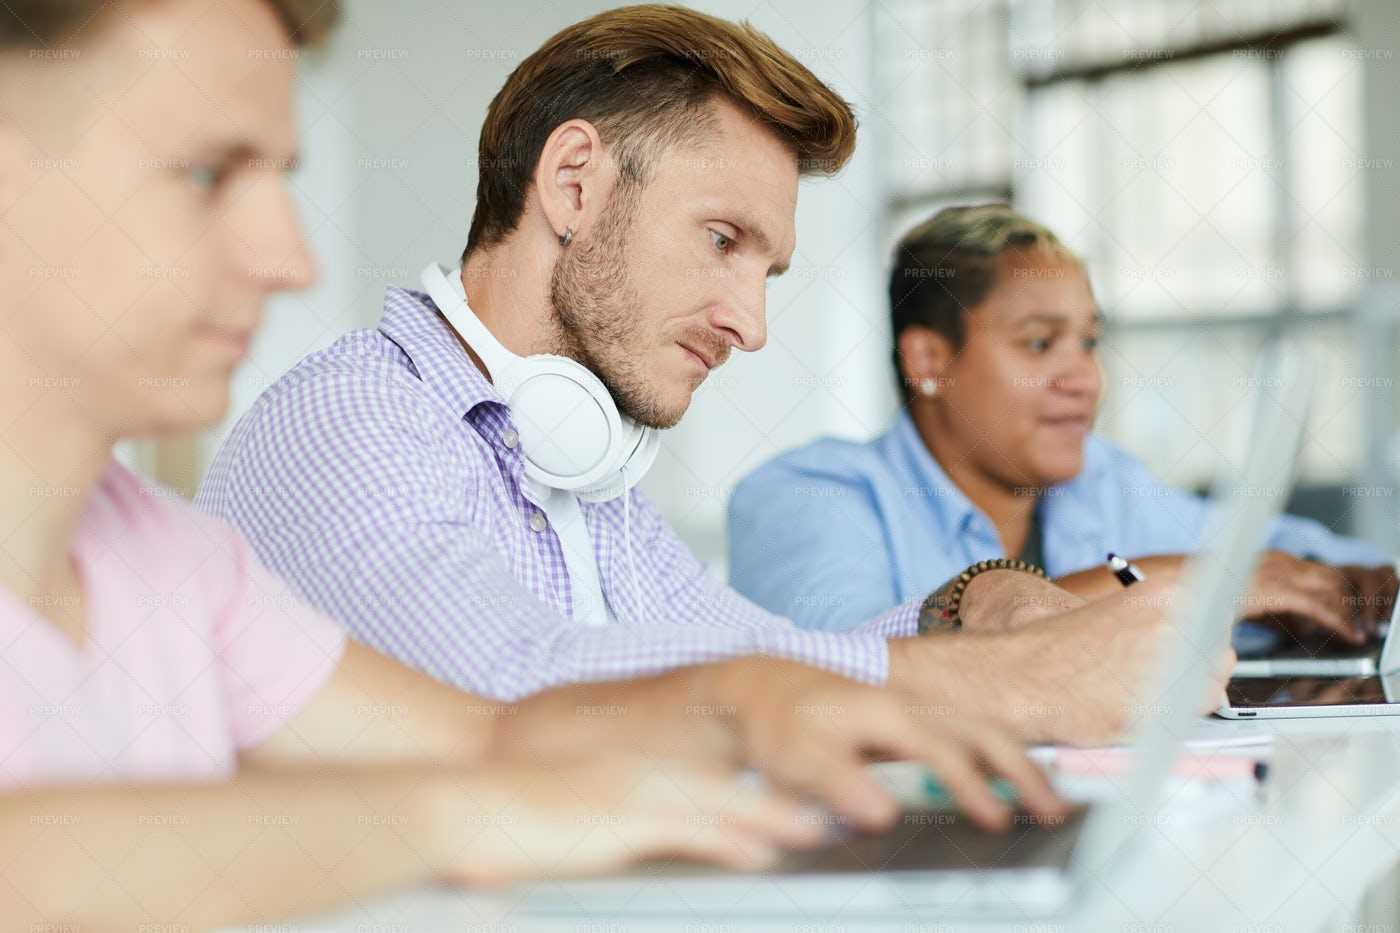 Concentrated Guy Analyzing...: Stock Photos